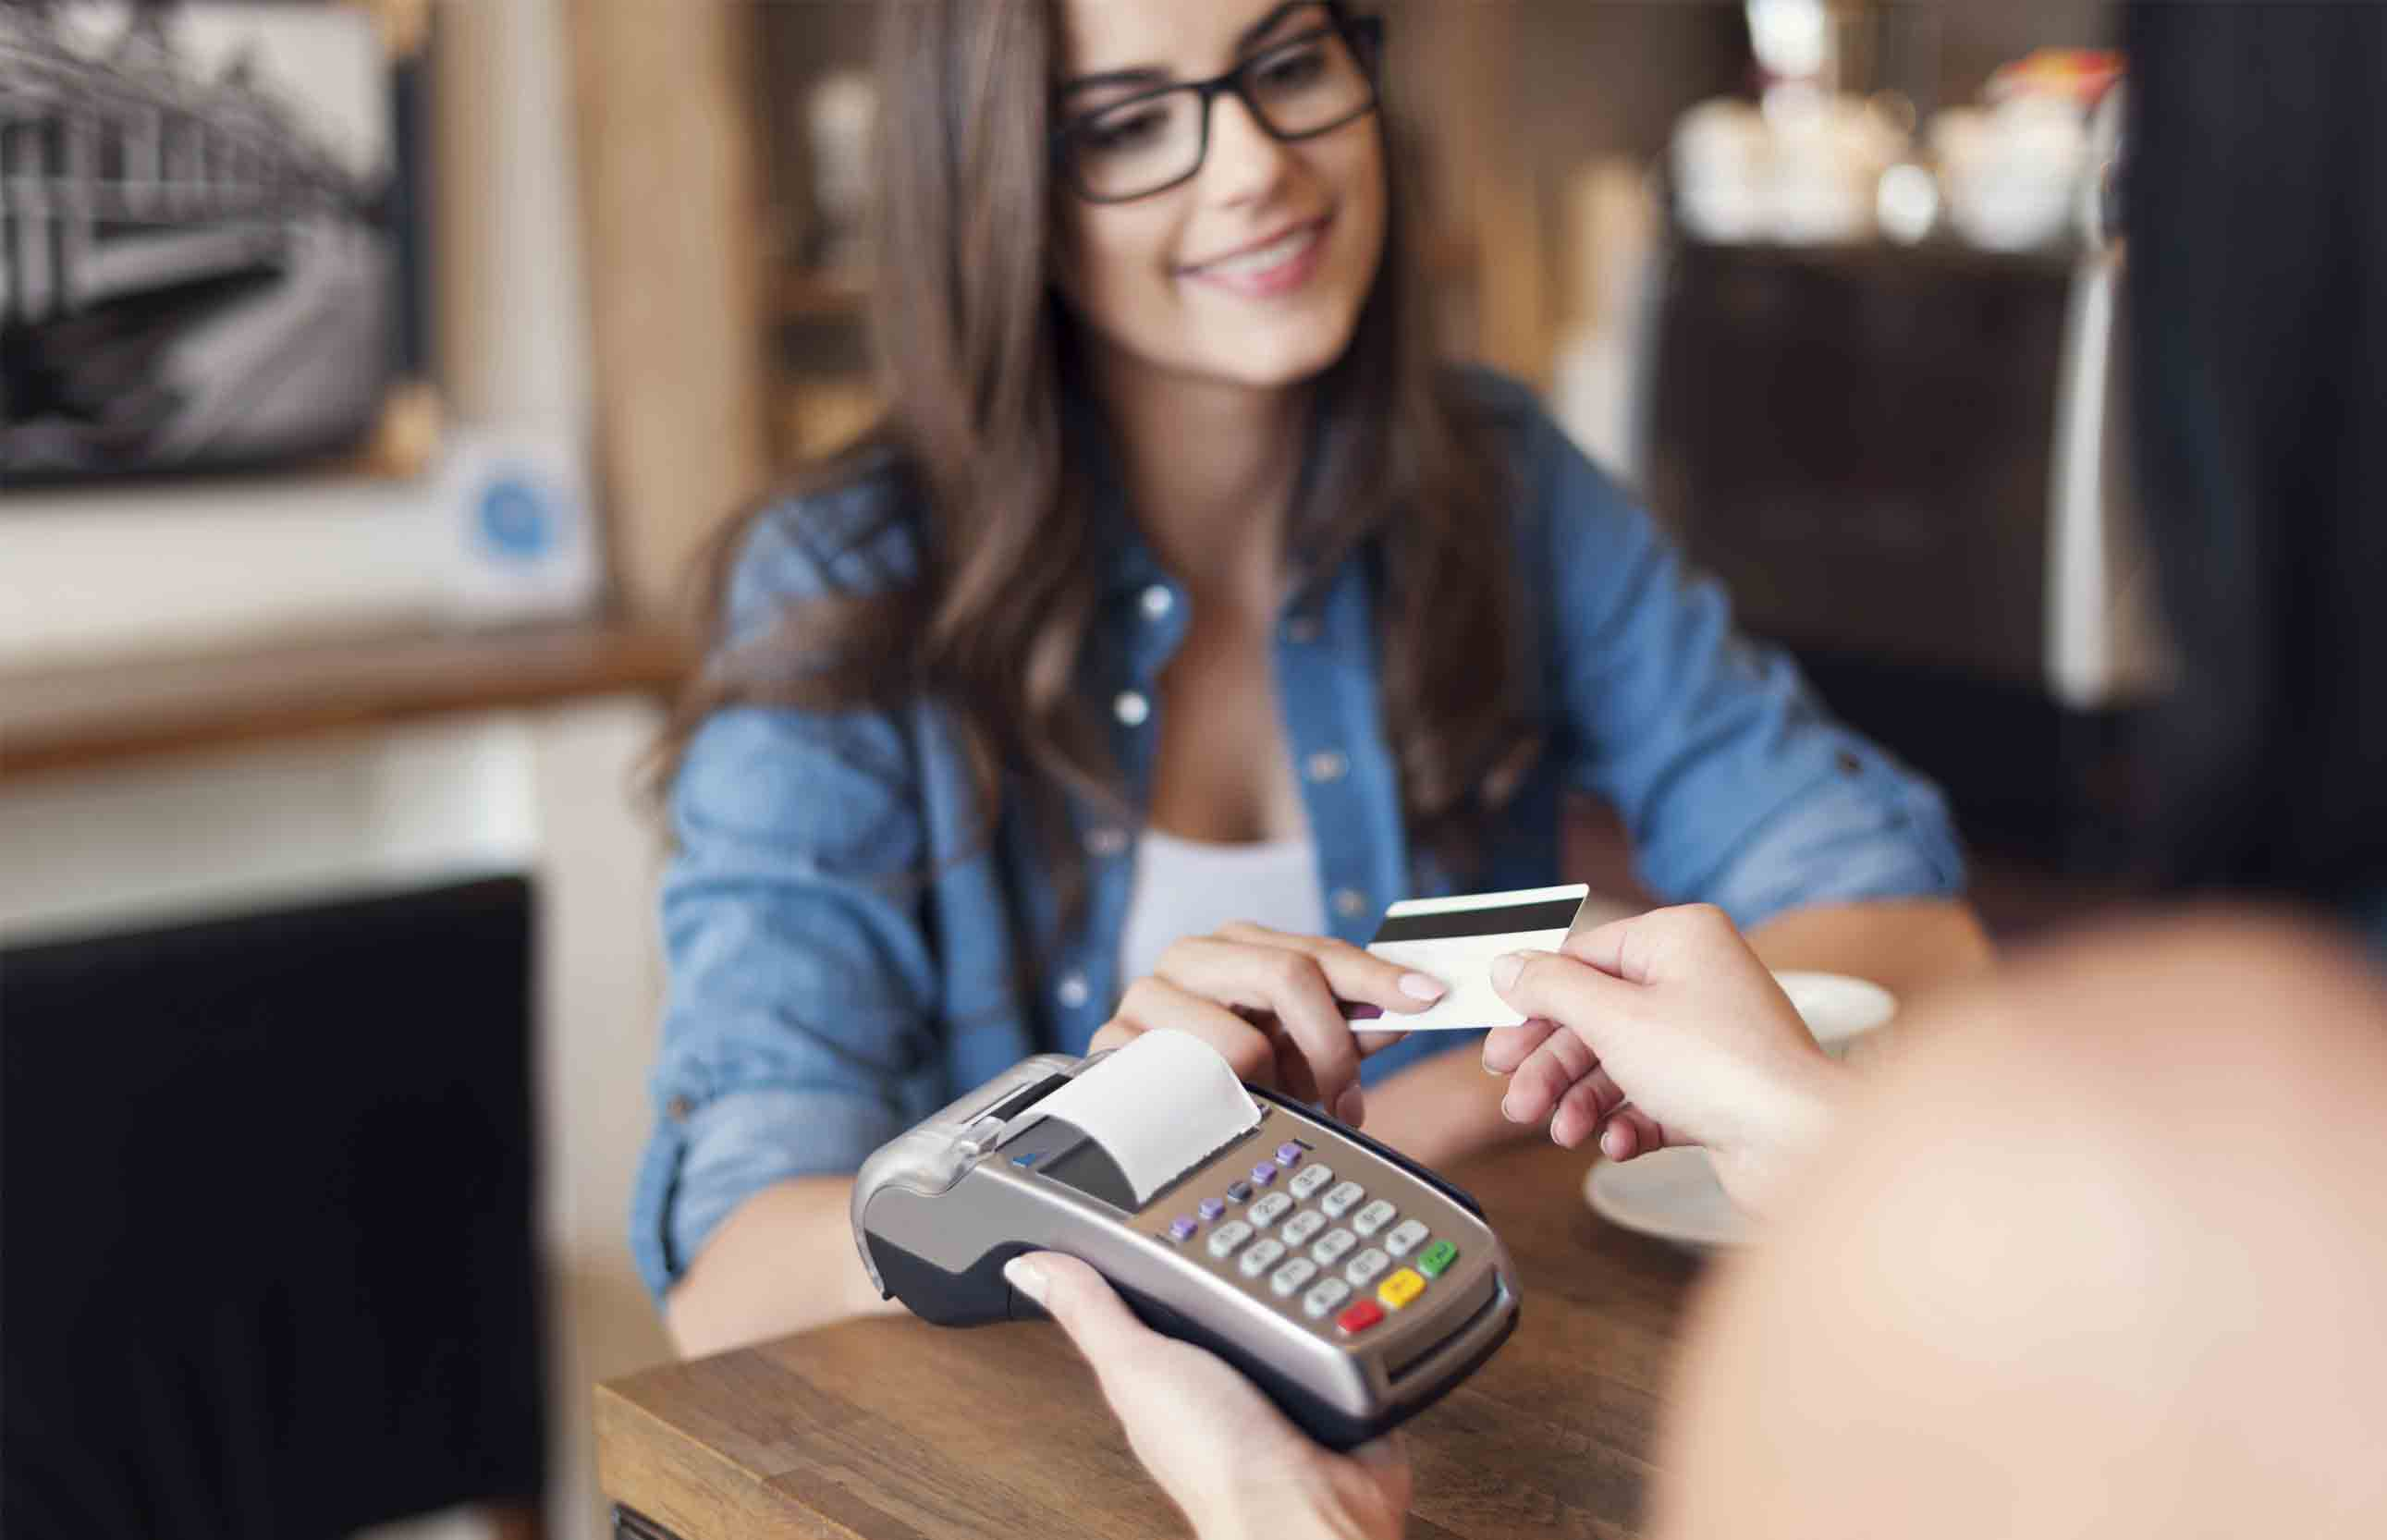 Why Chip Credit Cards Are Stressing Out This Cashier